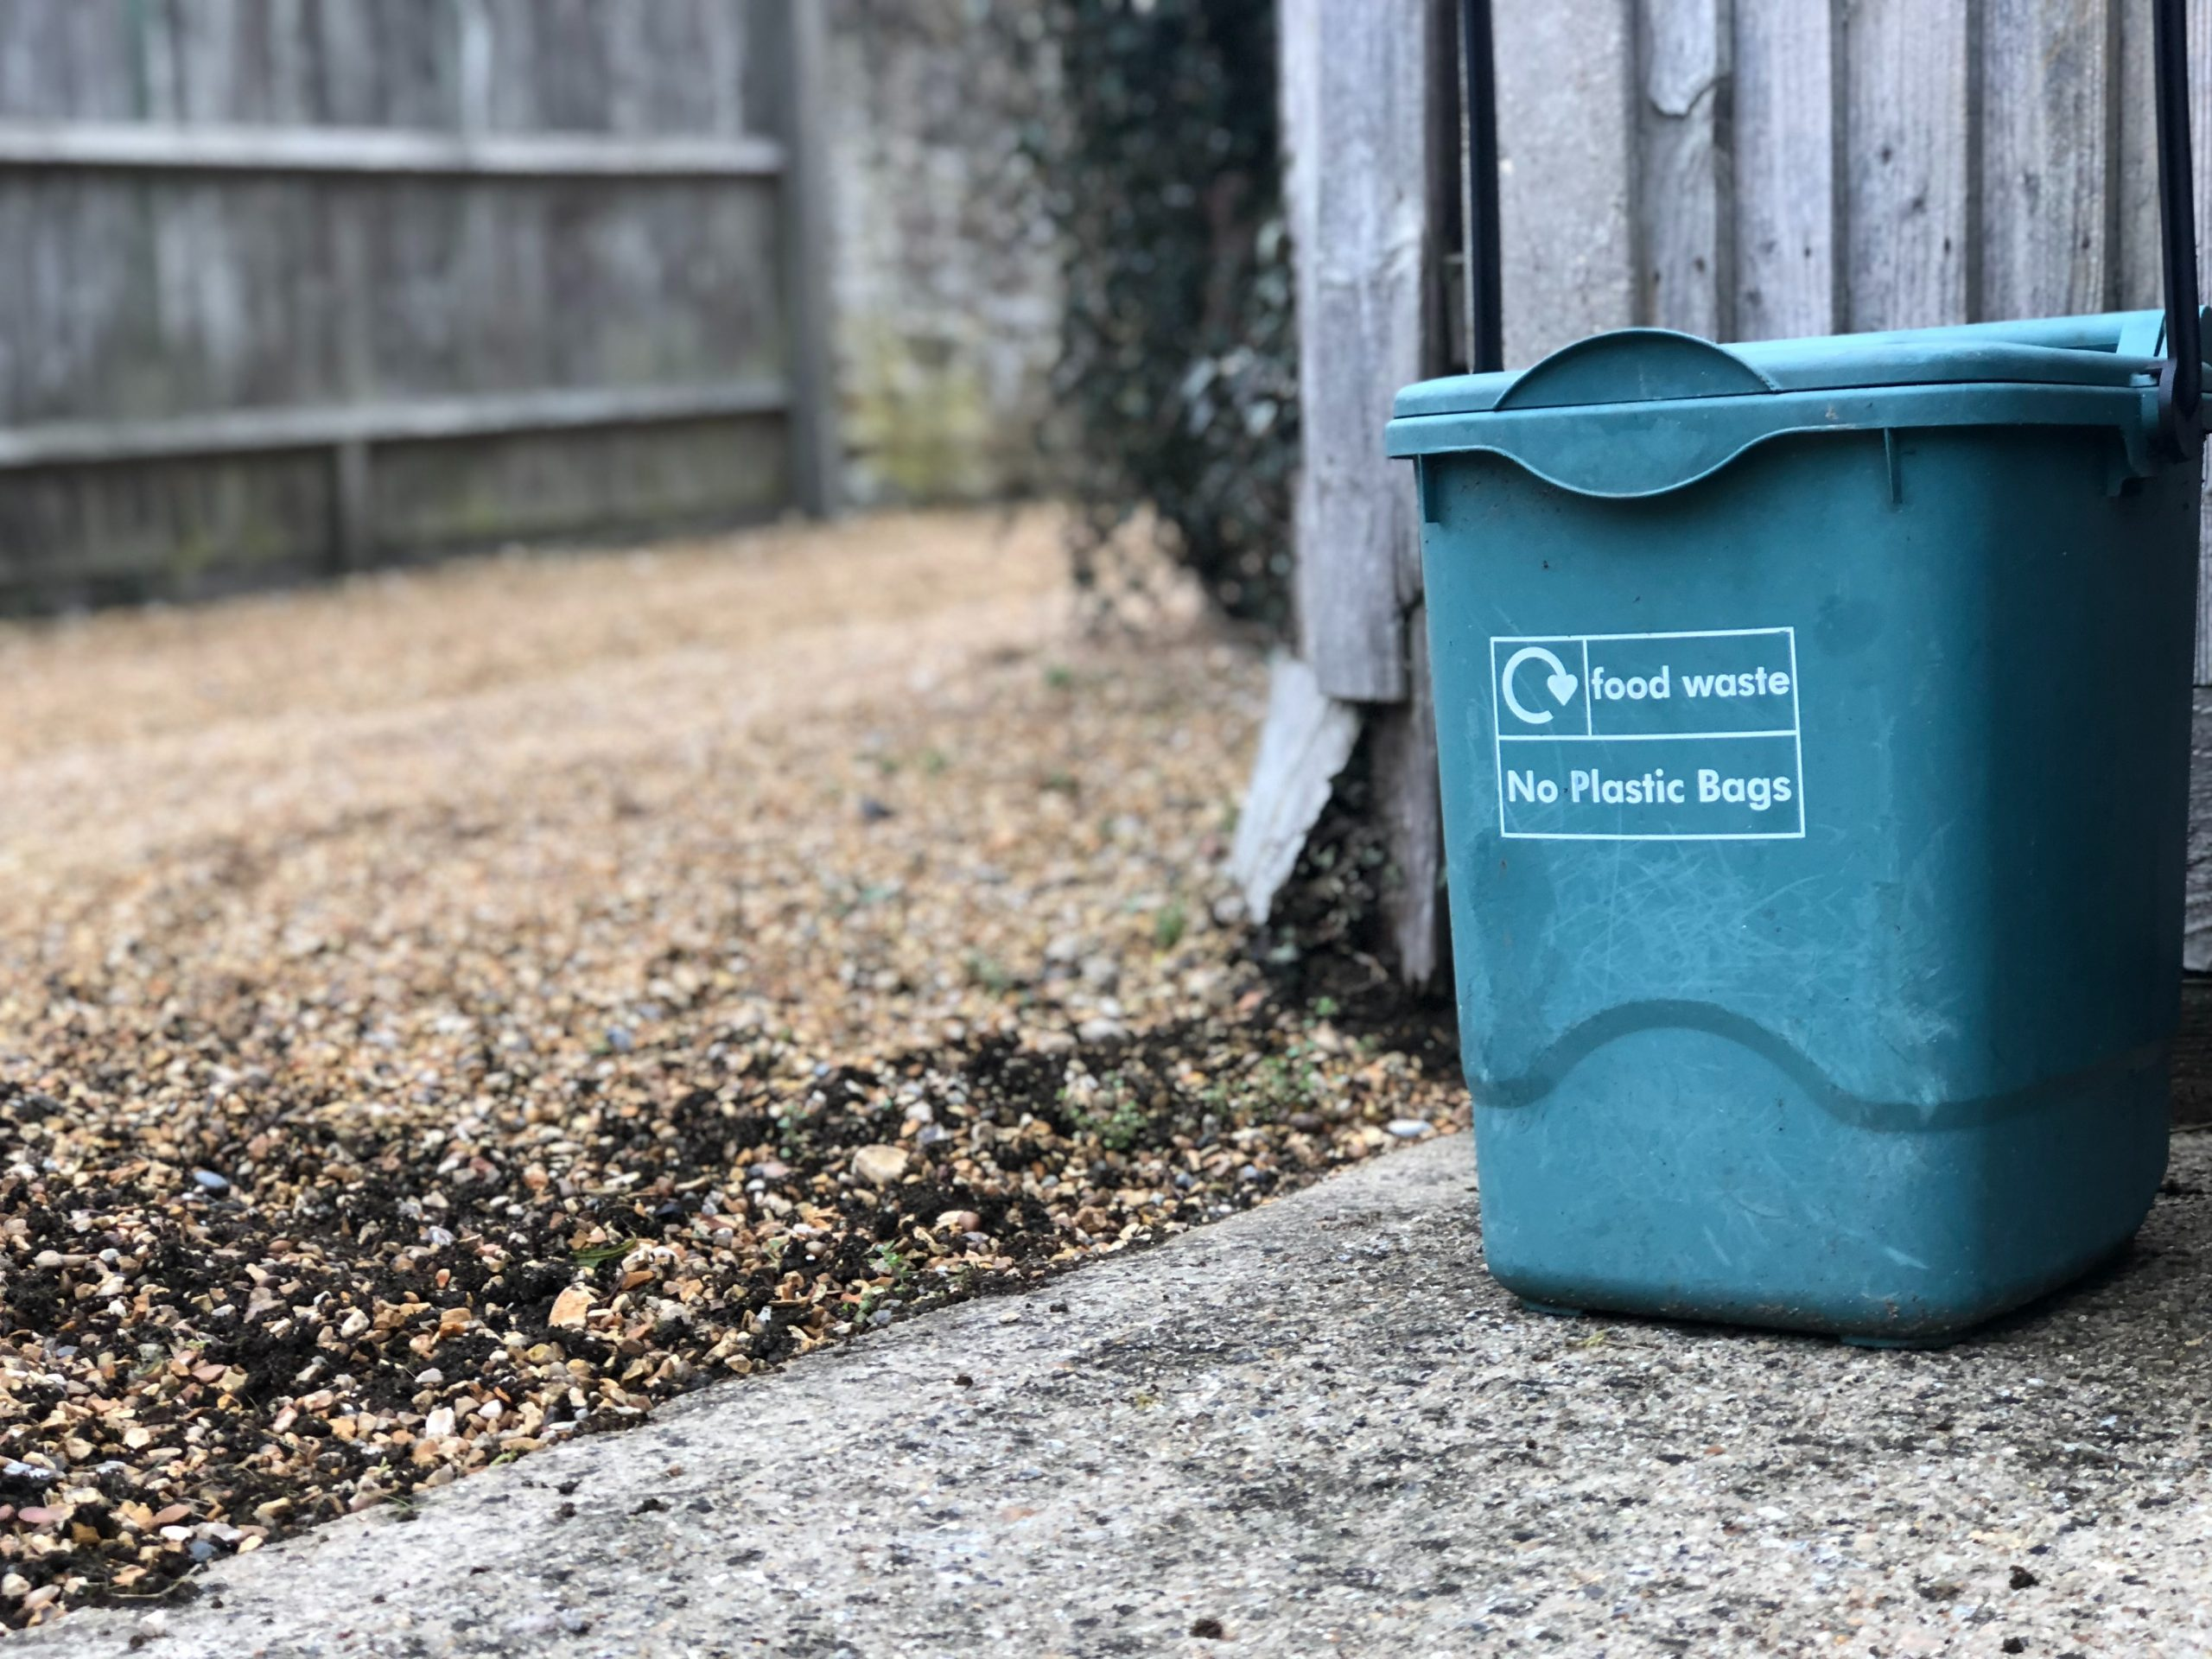 Green food waste bin standing outside against a fence